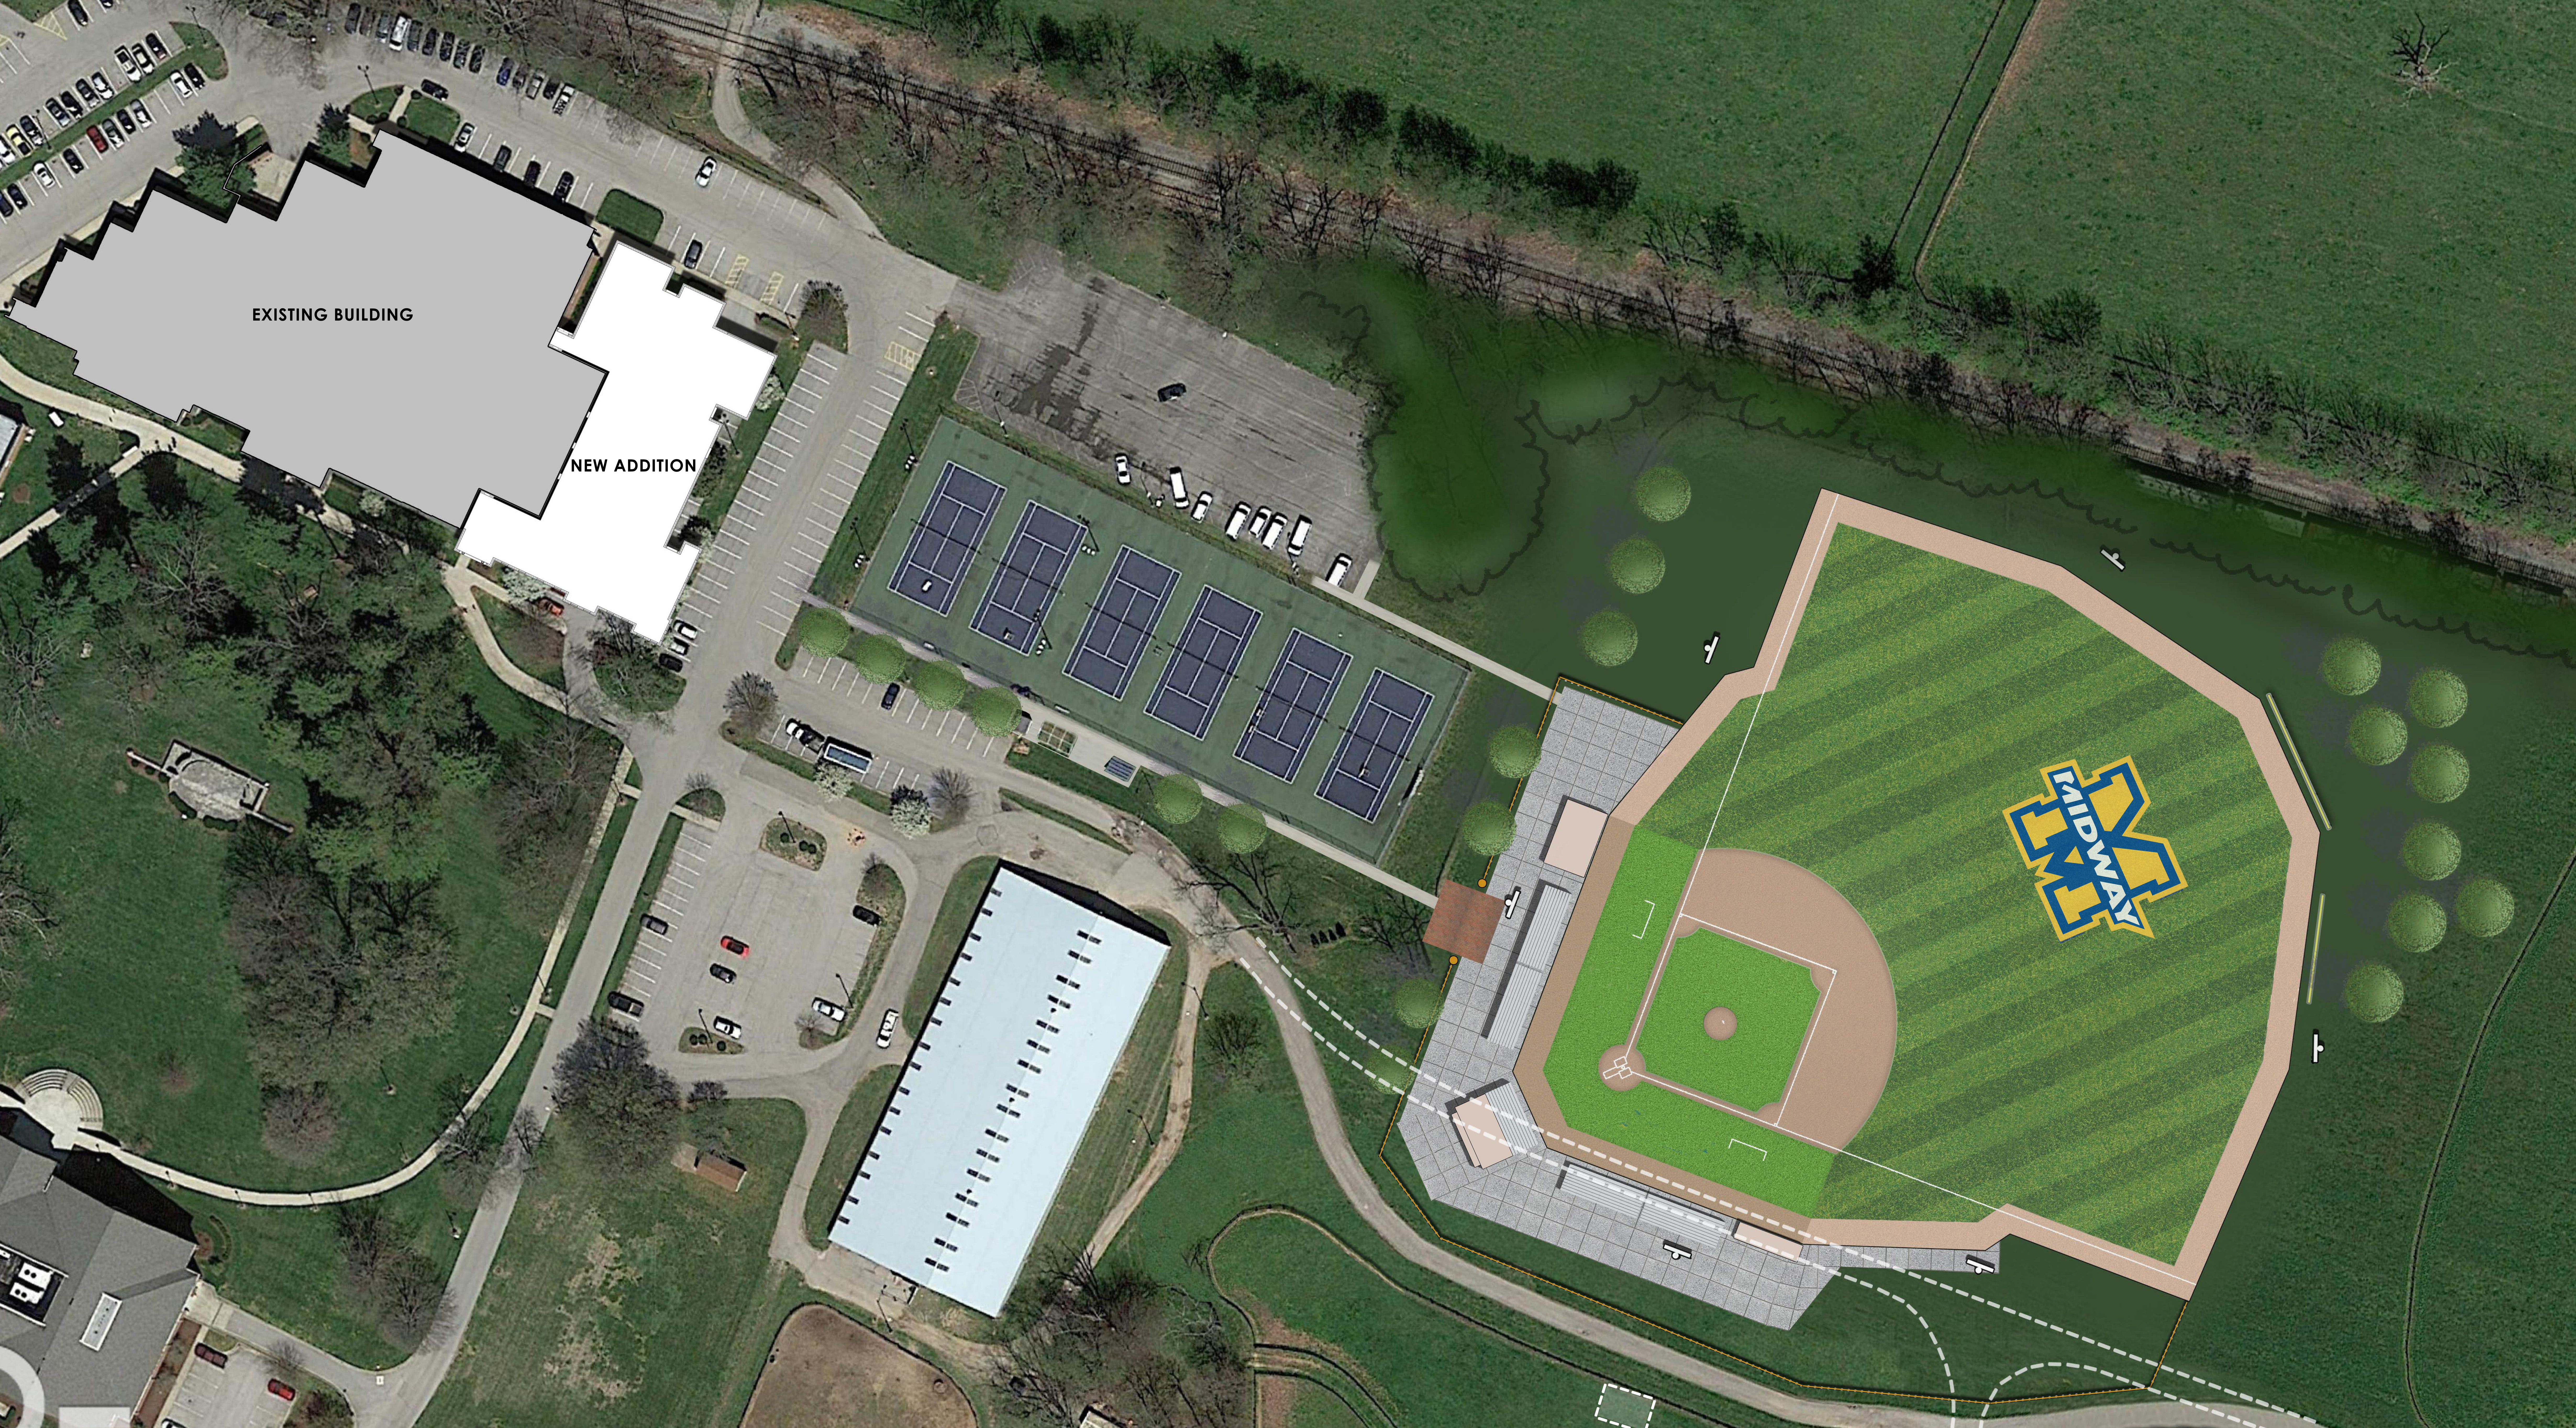 midway university baseball park aerial view